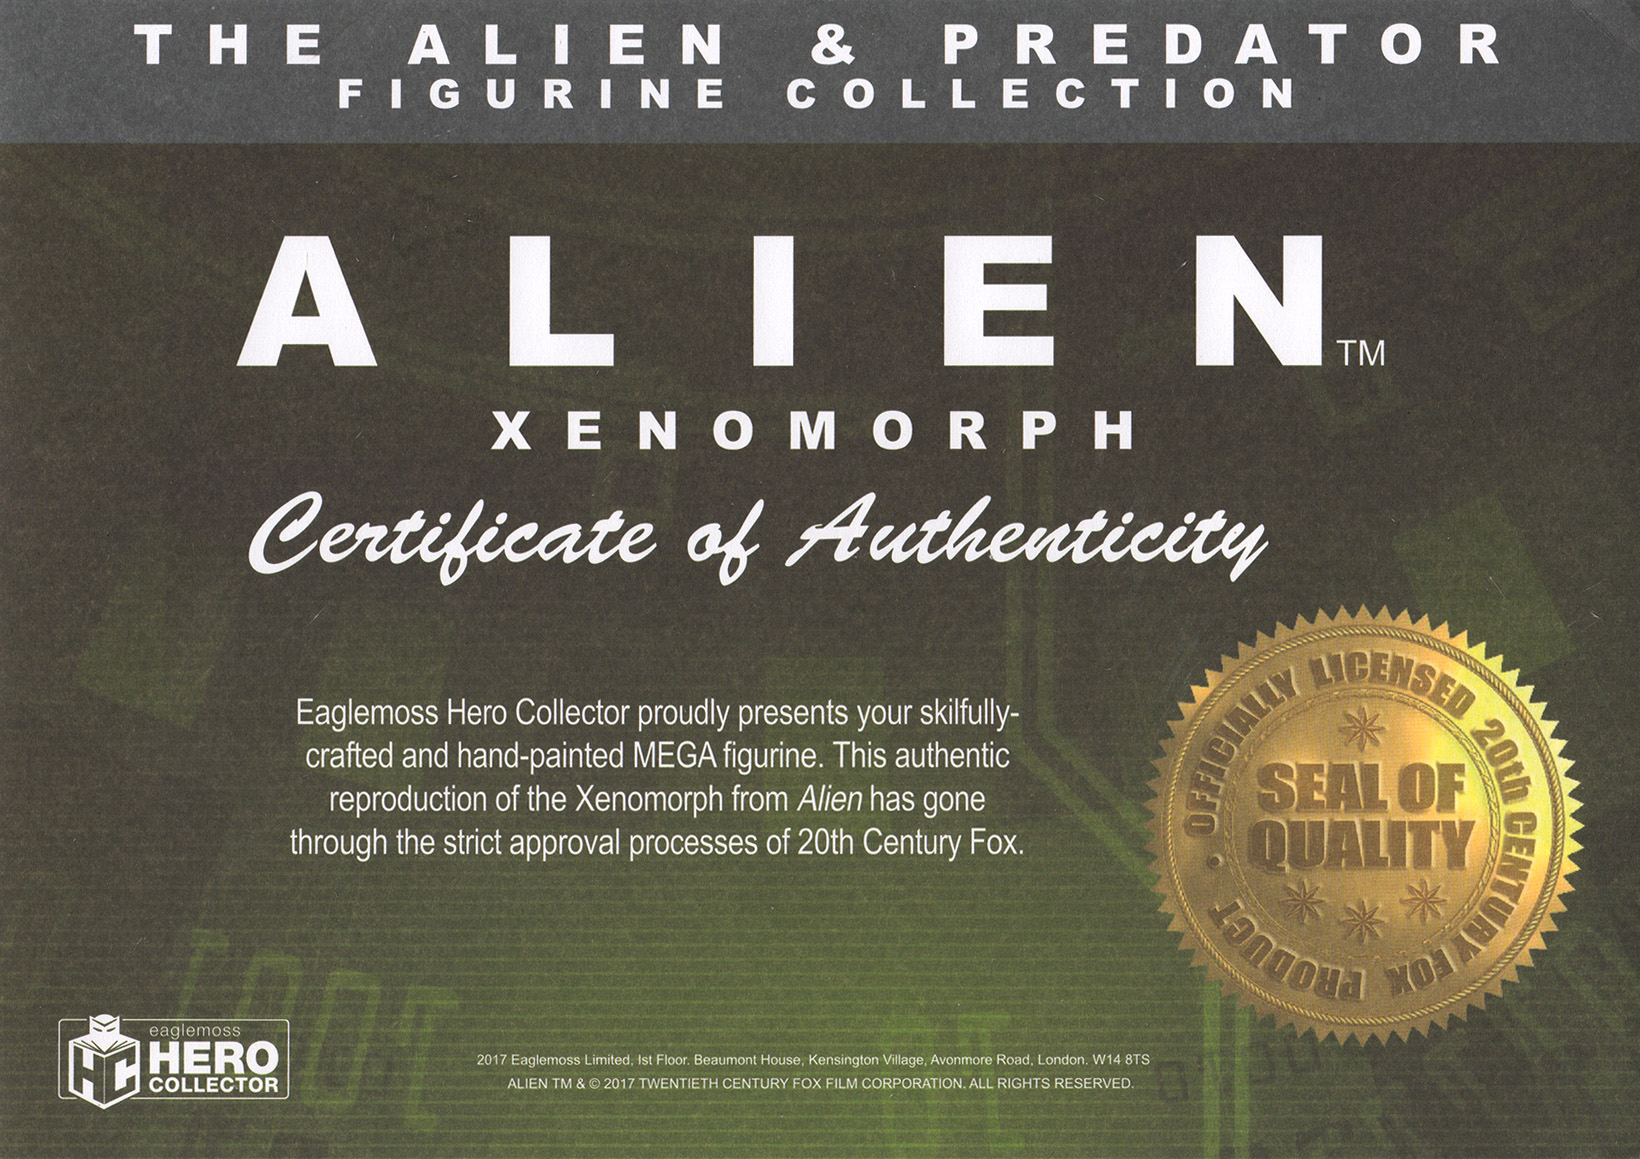 Eaglemoss Alien & Predator Magazine Issue Mega 1 Certificate